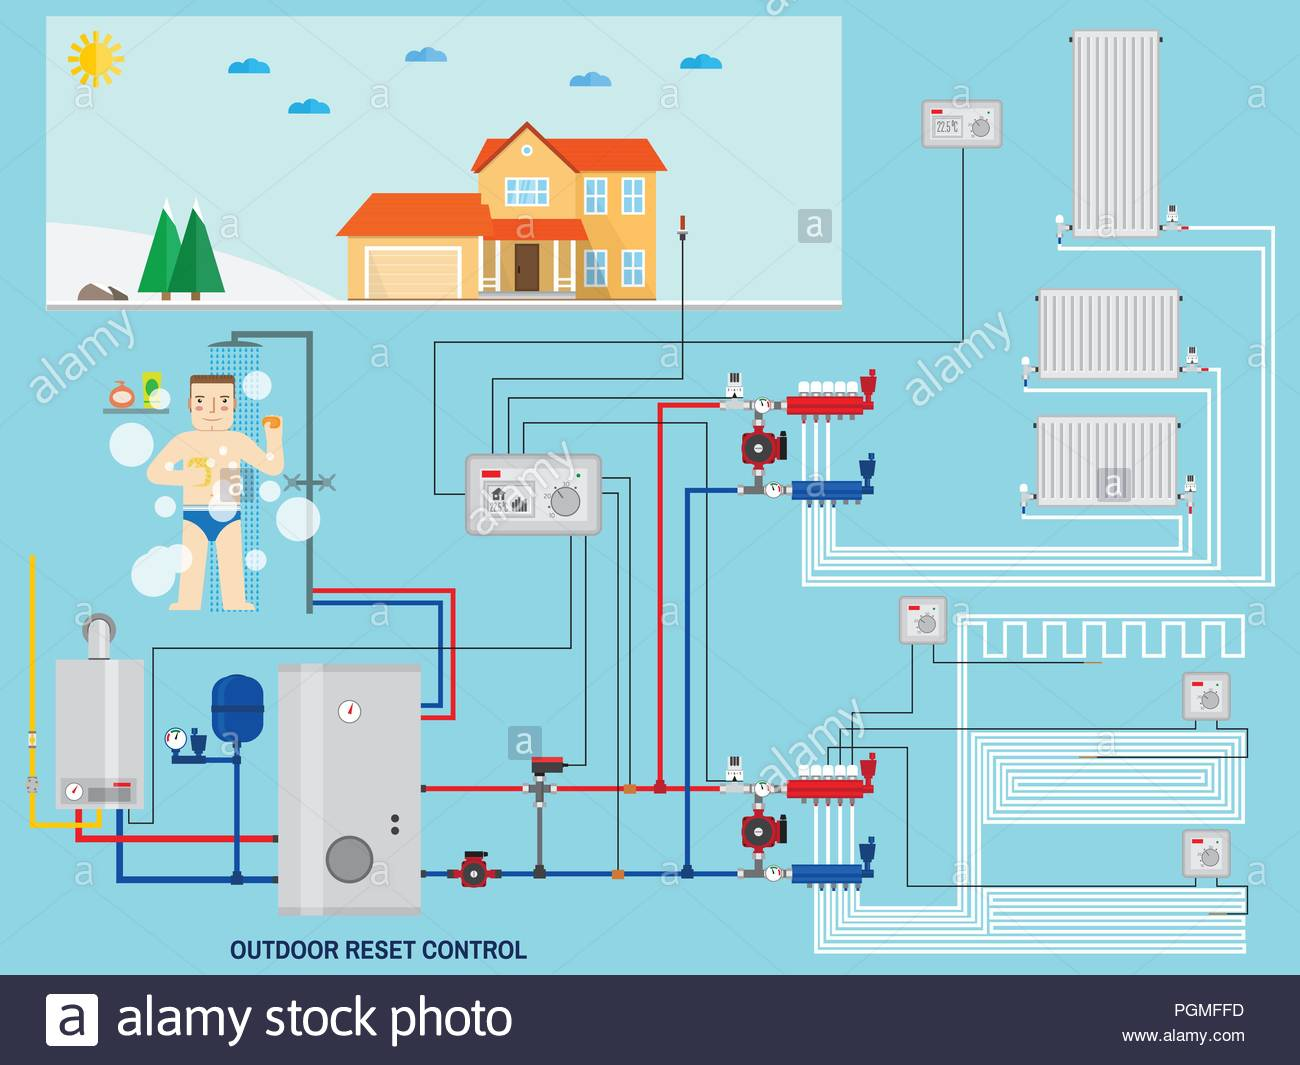 Central Heating Systems Stock Photos & Central Heating Systems Stock ...